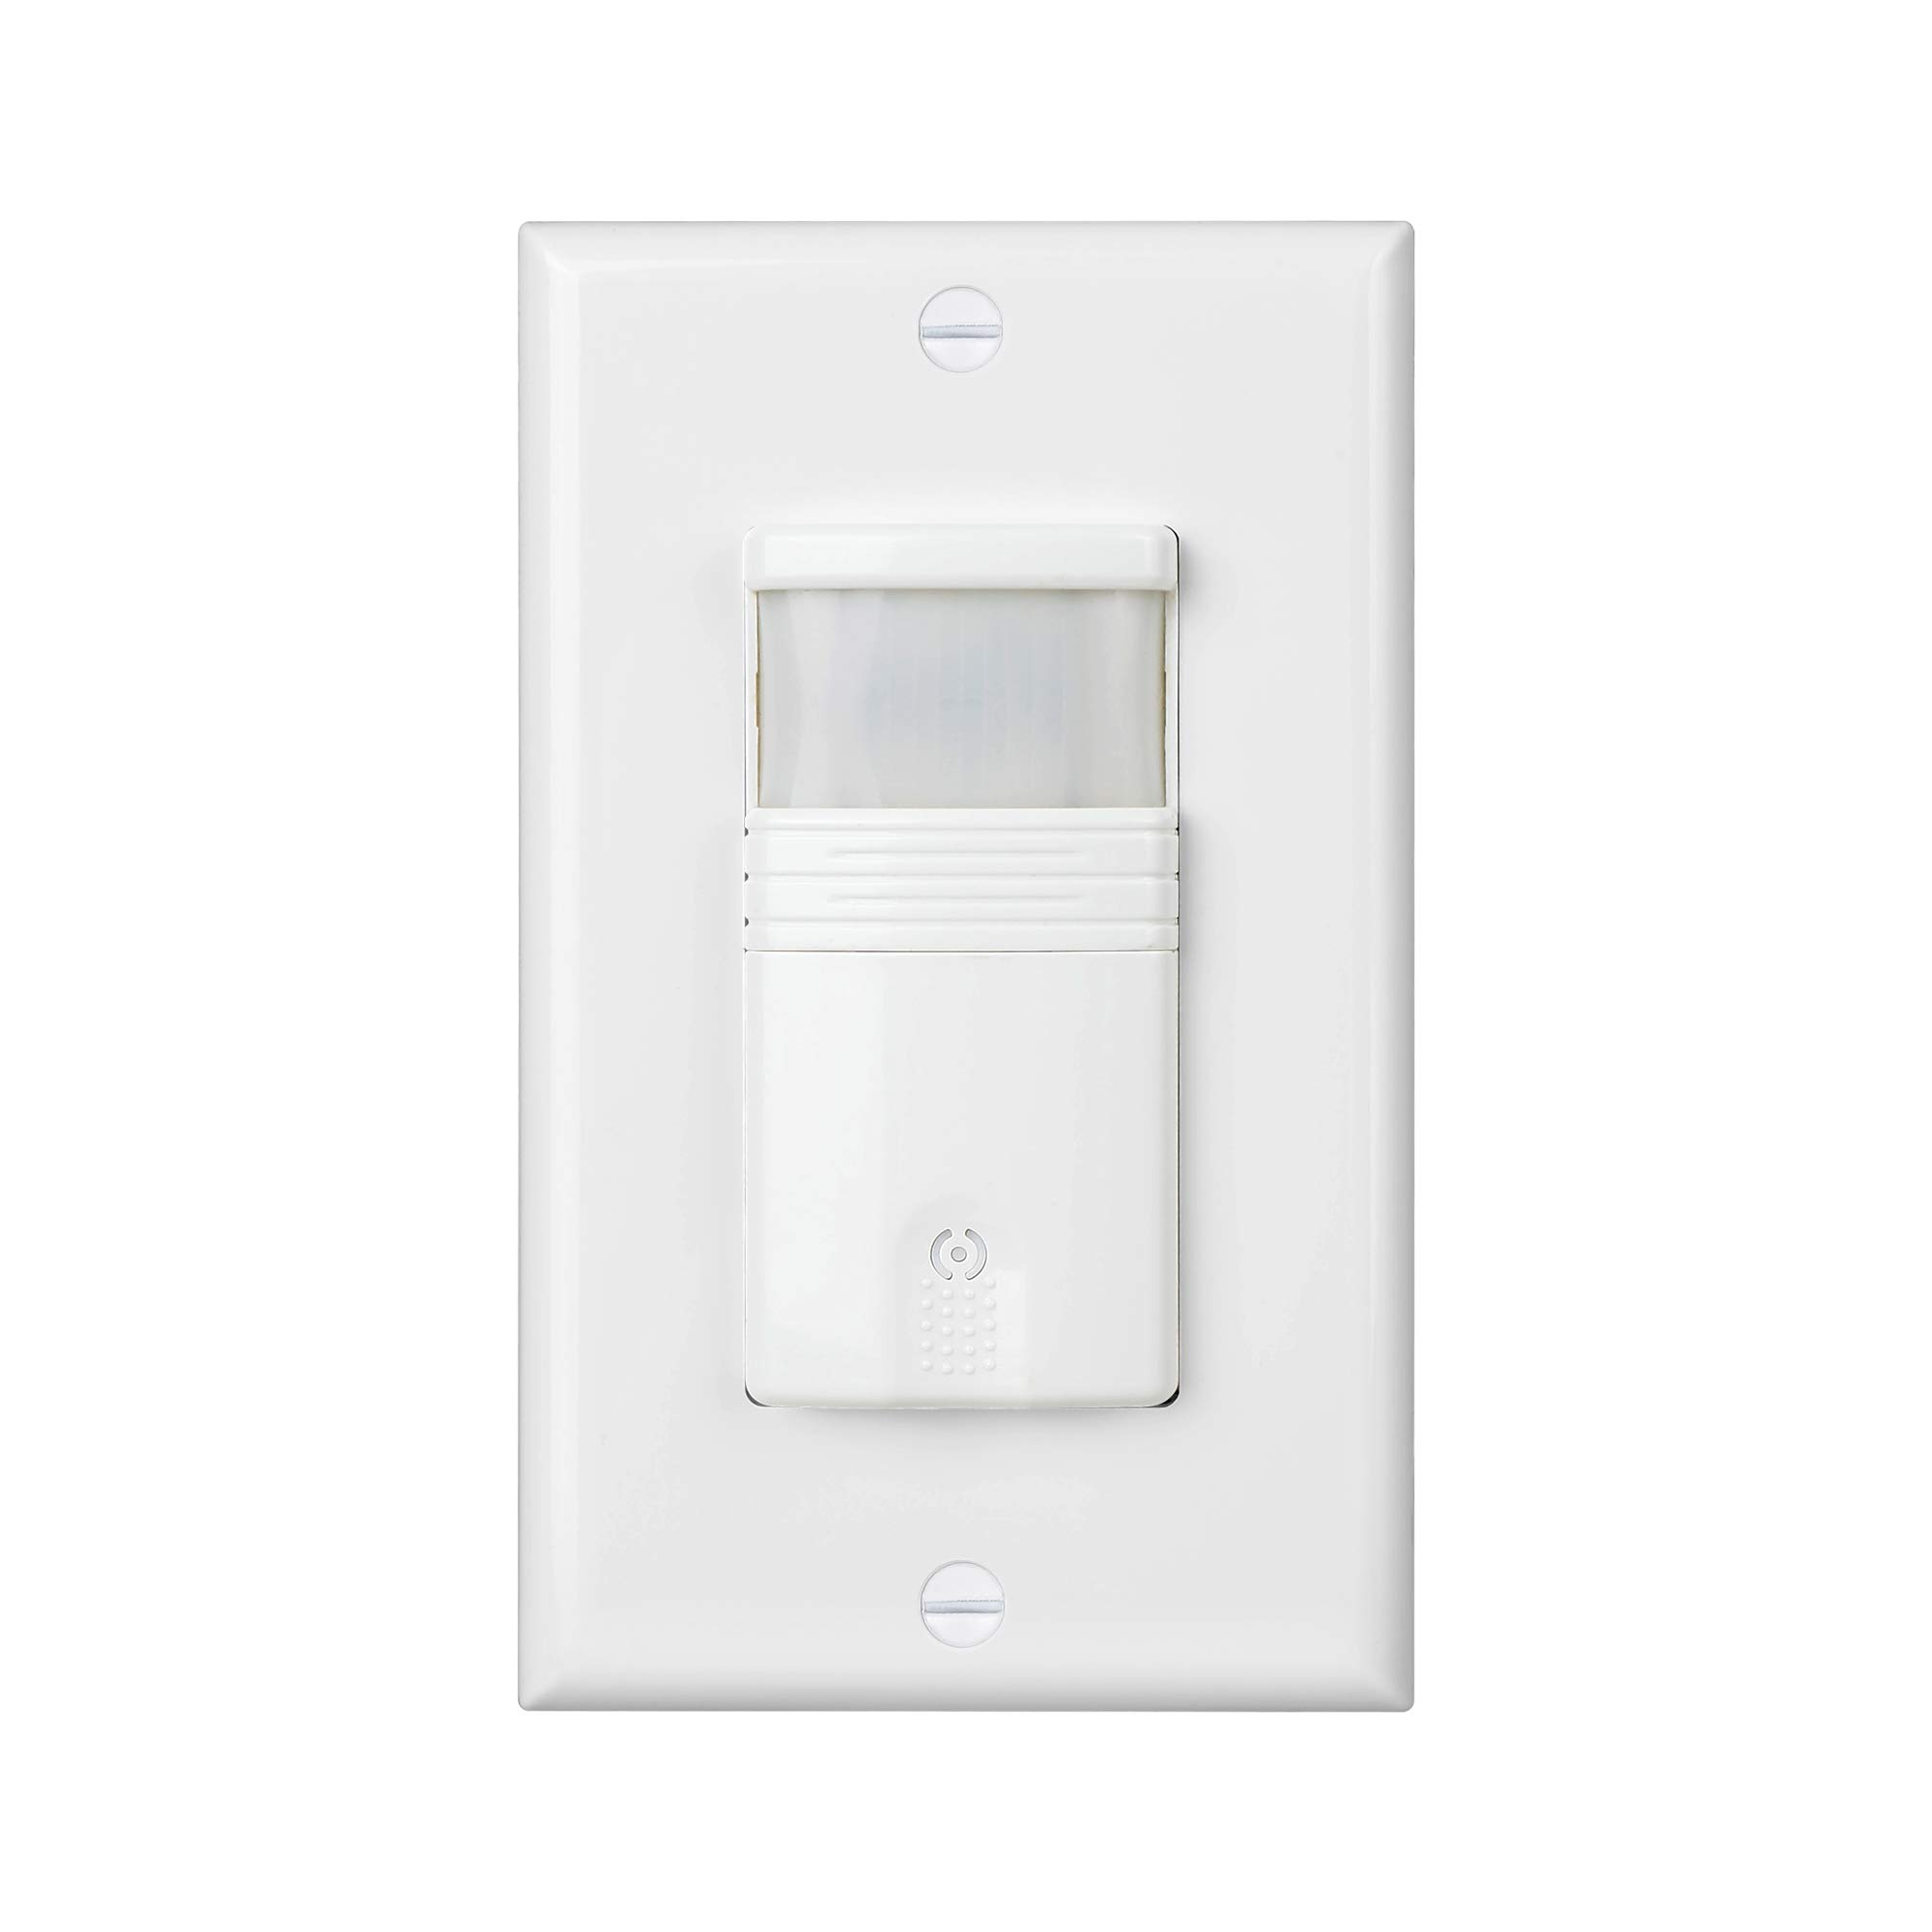 (Pack of 2) White 3-Way (Not Single Pole) Motion Sensor Light Switch - NEUTRAL Wire Required - For Indoor Use - Vacancy & Occupancy Modes - Title 24, UL Certified - Adjustable Timer